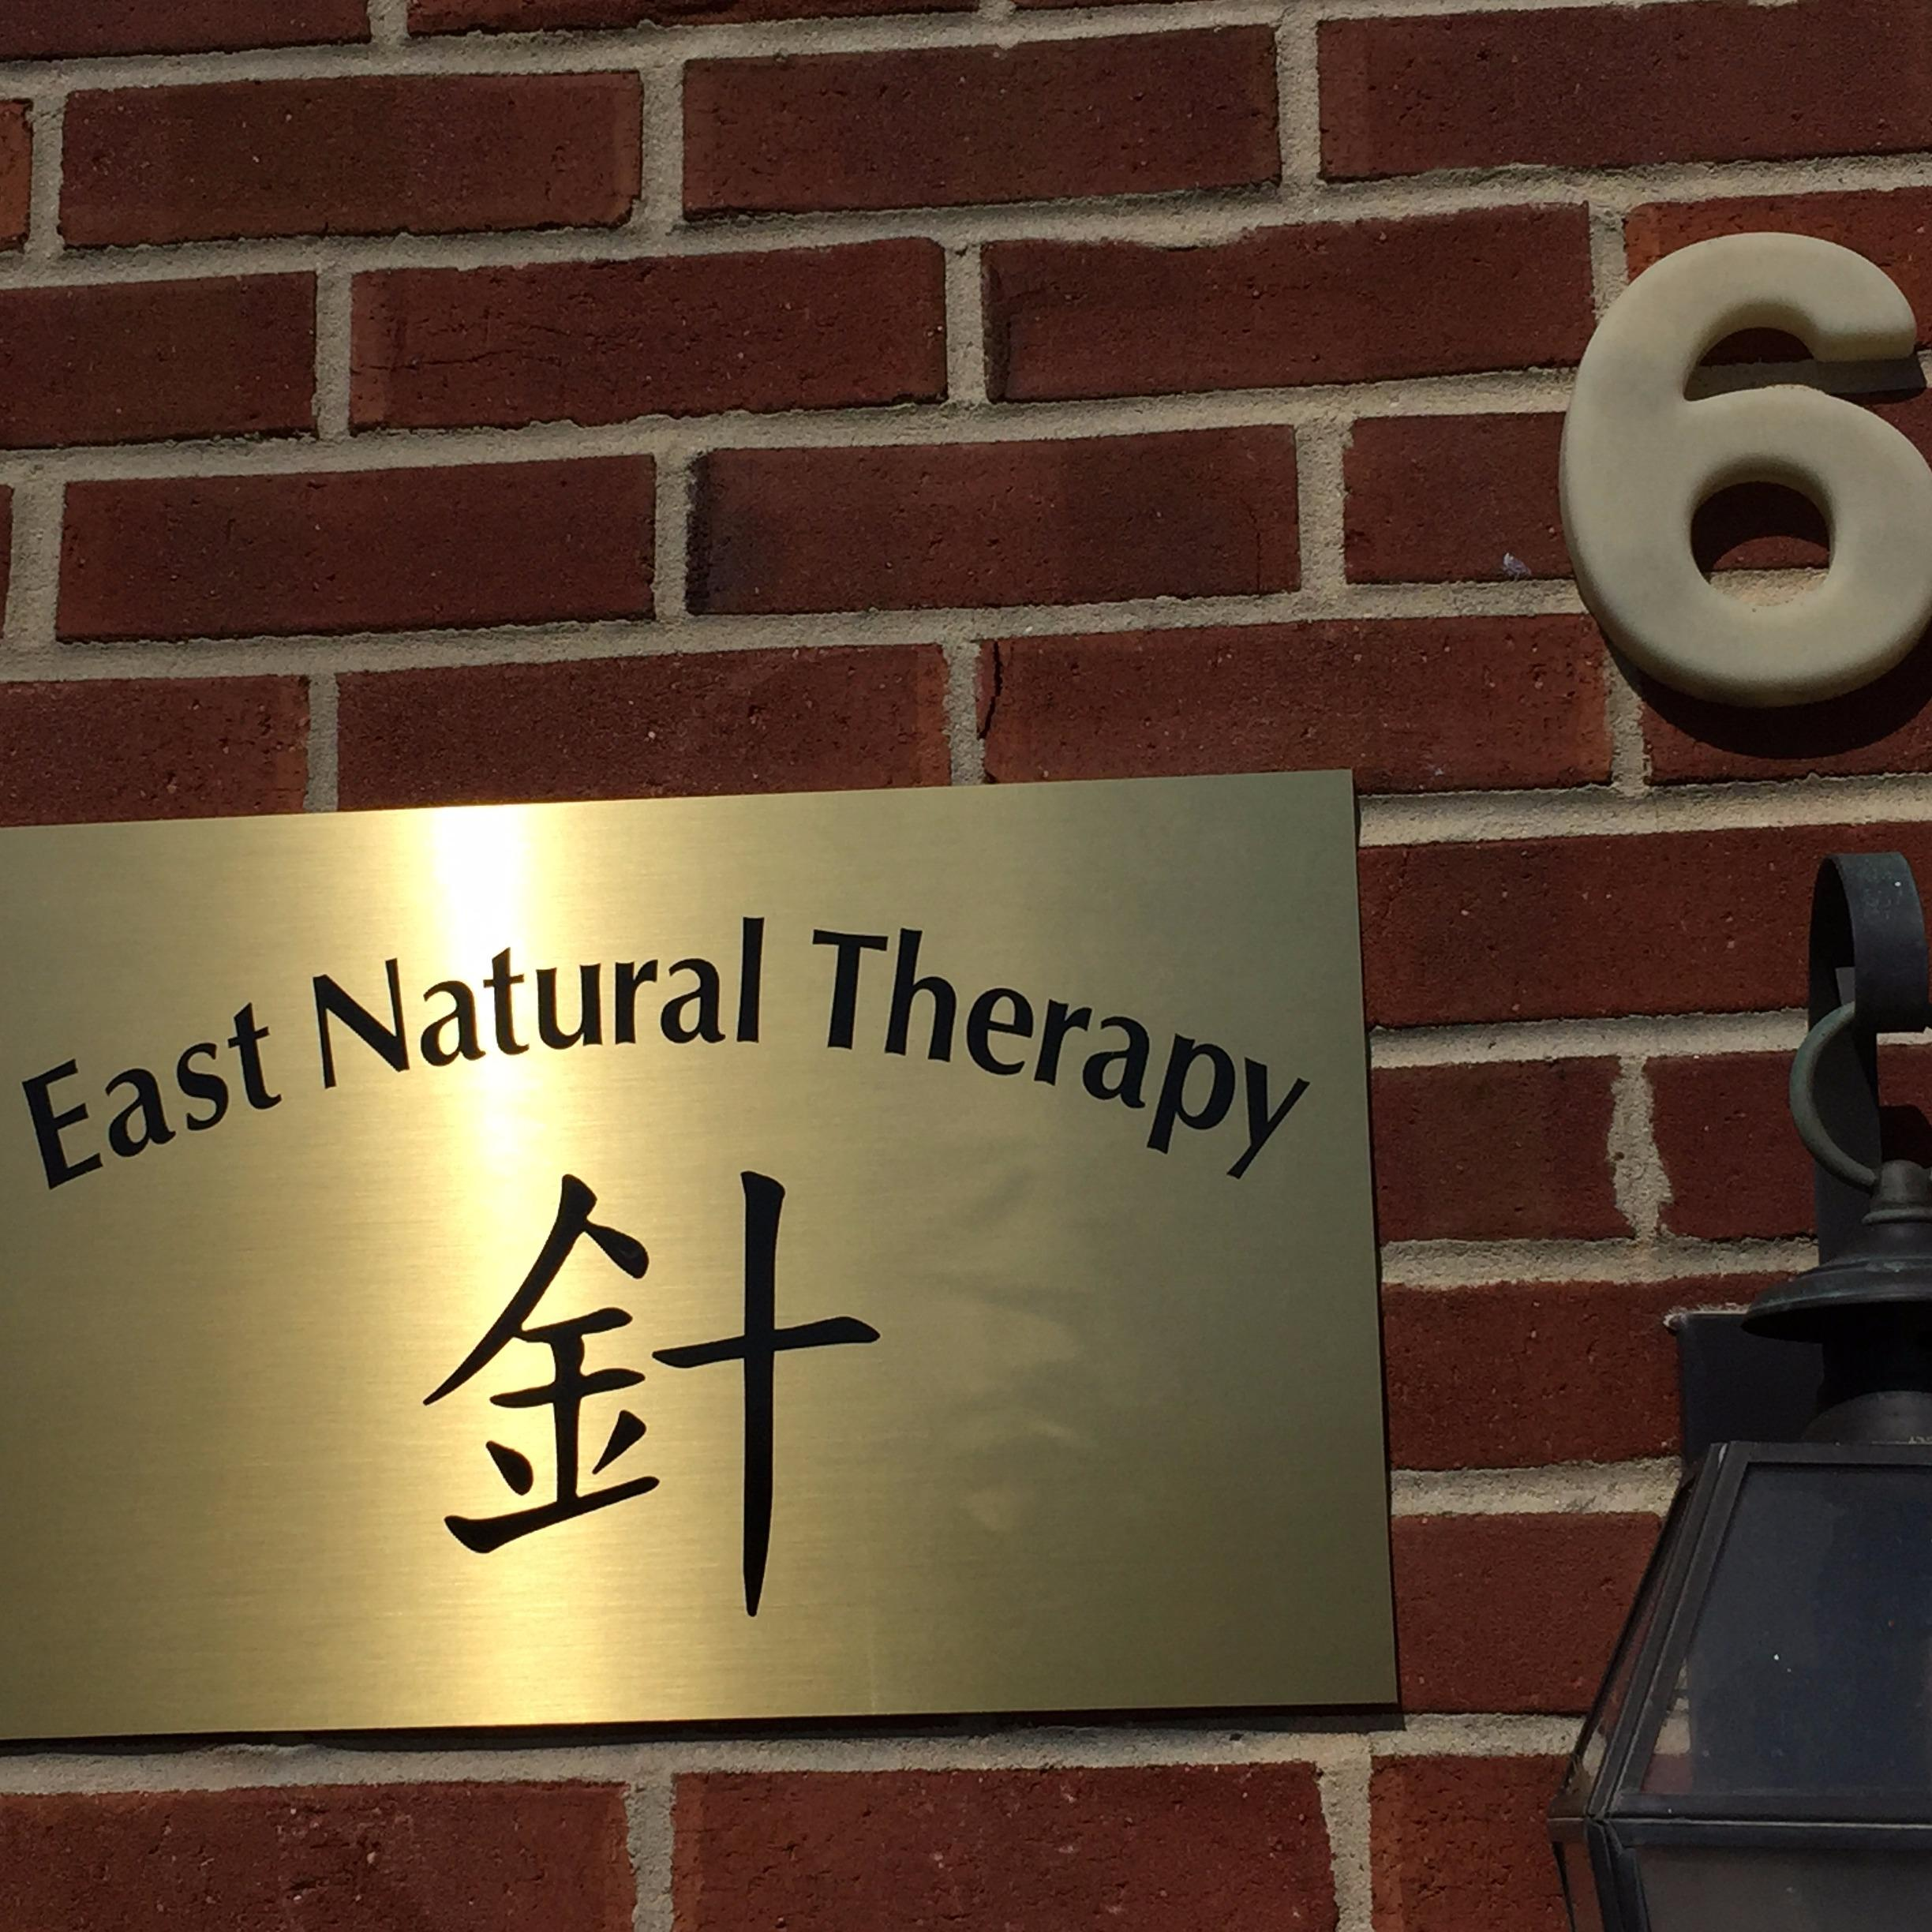 East Natural Therapy